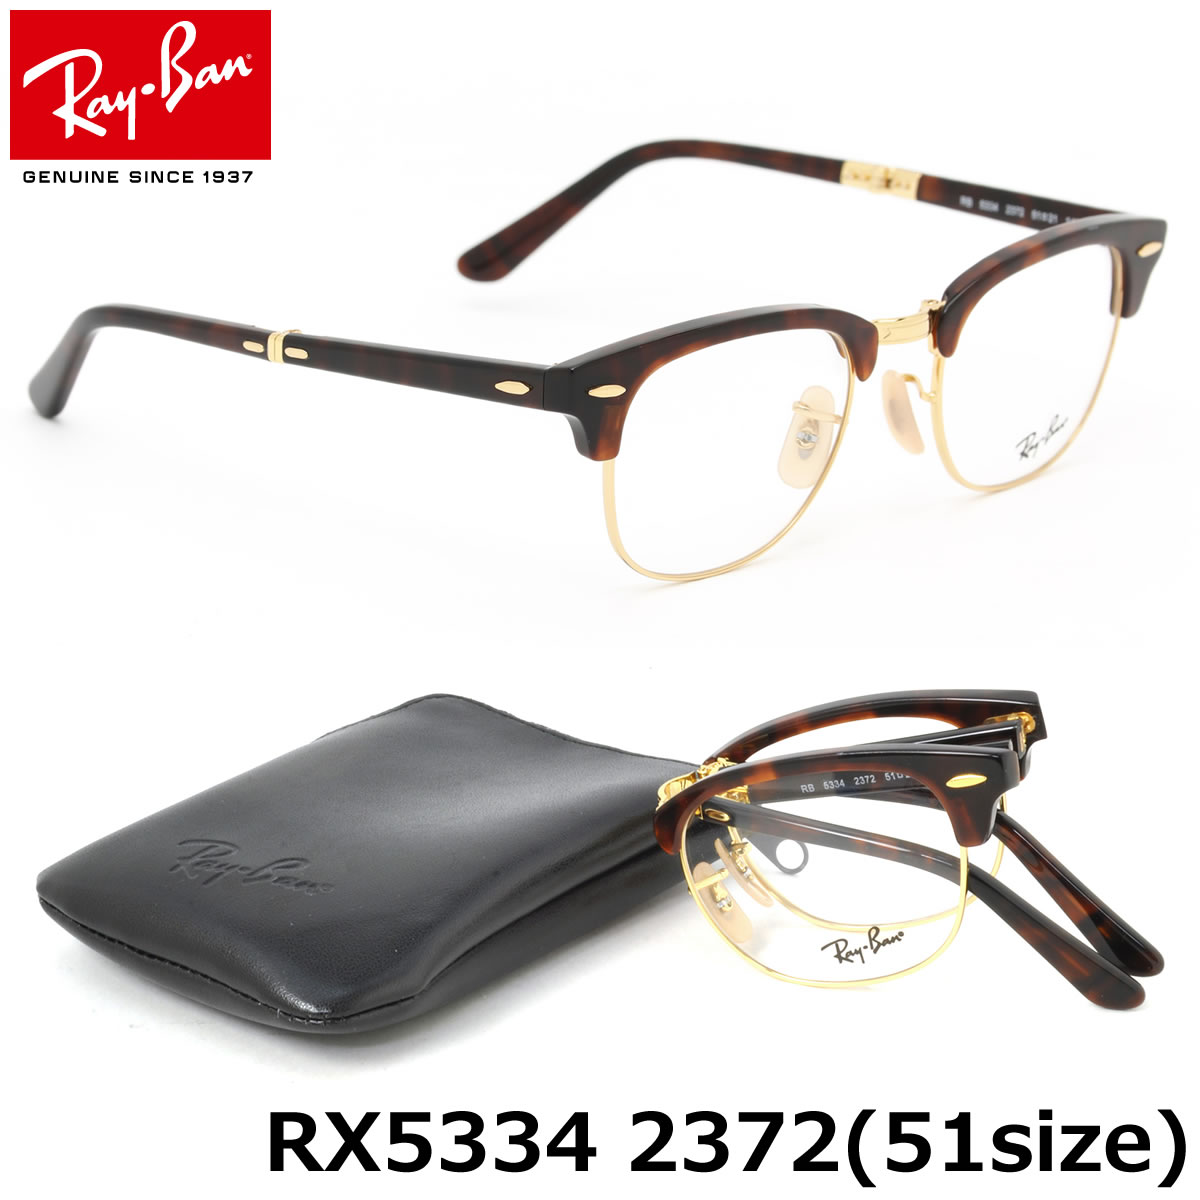 a4b8d09fdf Super SALE points up to 35 x 12 8 (Thursday) 1 59 from Ray-Ban glasses  RX5334 2372 51 size RayBan Ray-Ban CLUB MASTER Club master square folding  folding ...